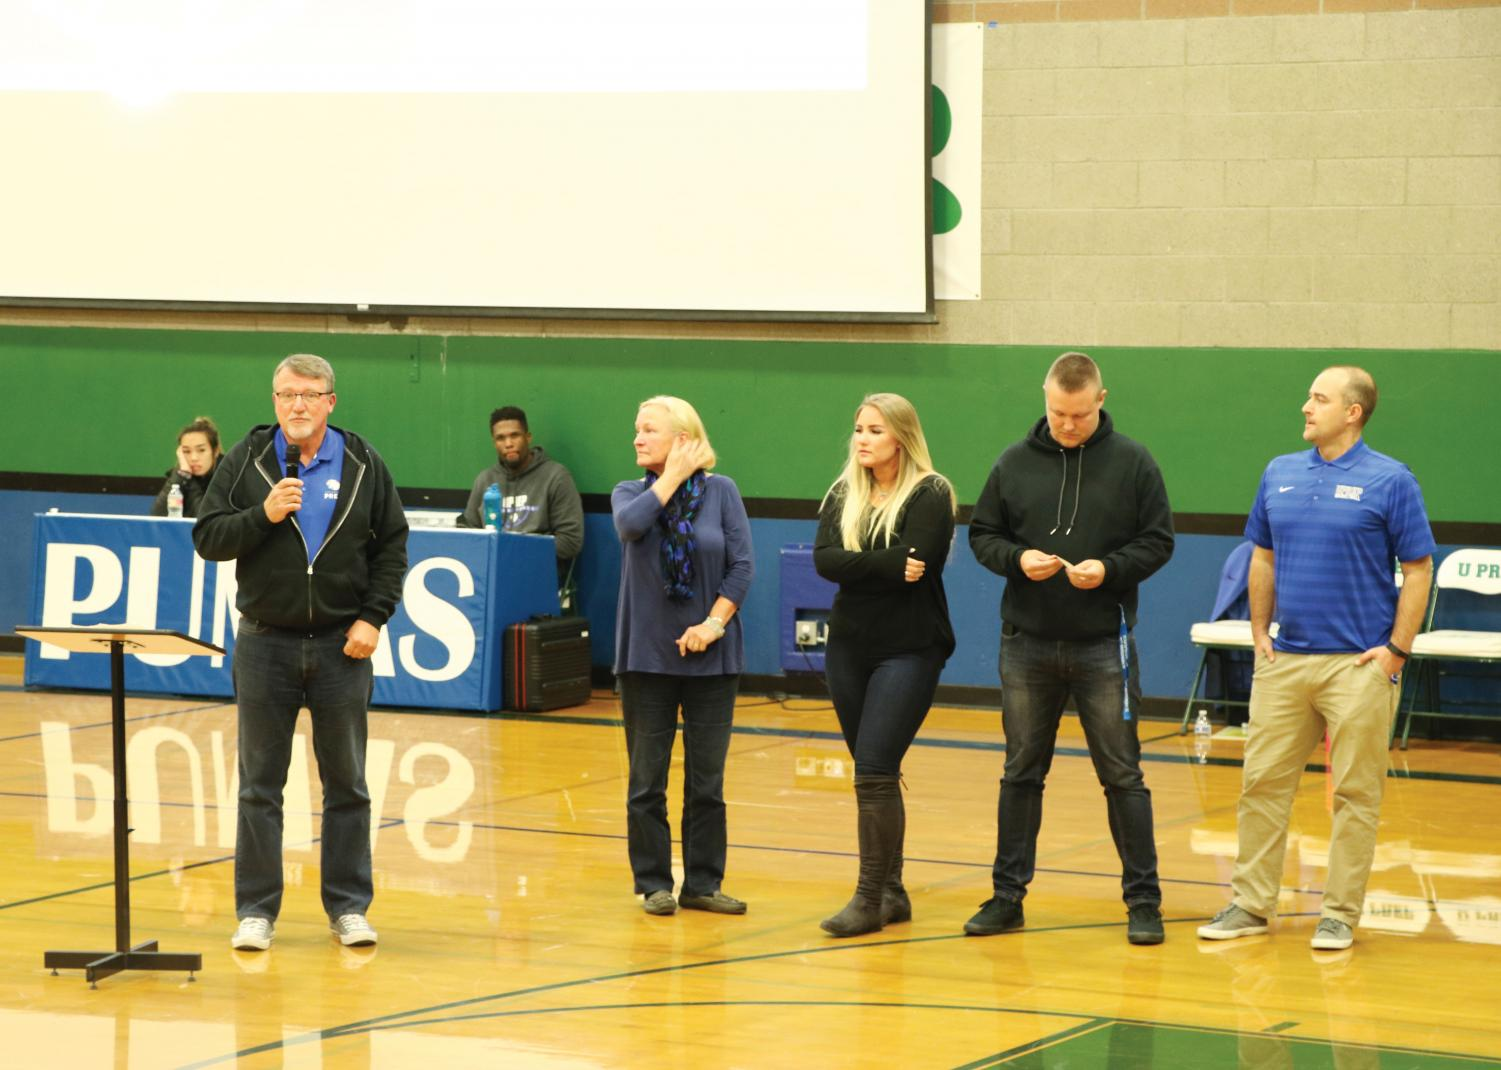 The Sanford family speaks at a University Prep Varsity Girls basketball game after the death of Raija Sanford. Pat Sanford, Raija's father, introduced Live Like Raija, an organization that strives to provide student athletes with the same immersion opportunities Raija recieved in her life.